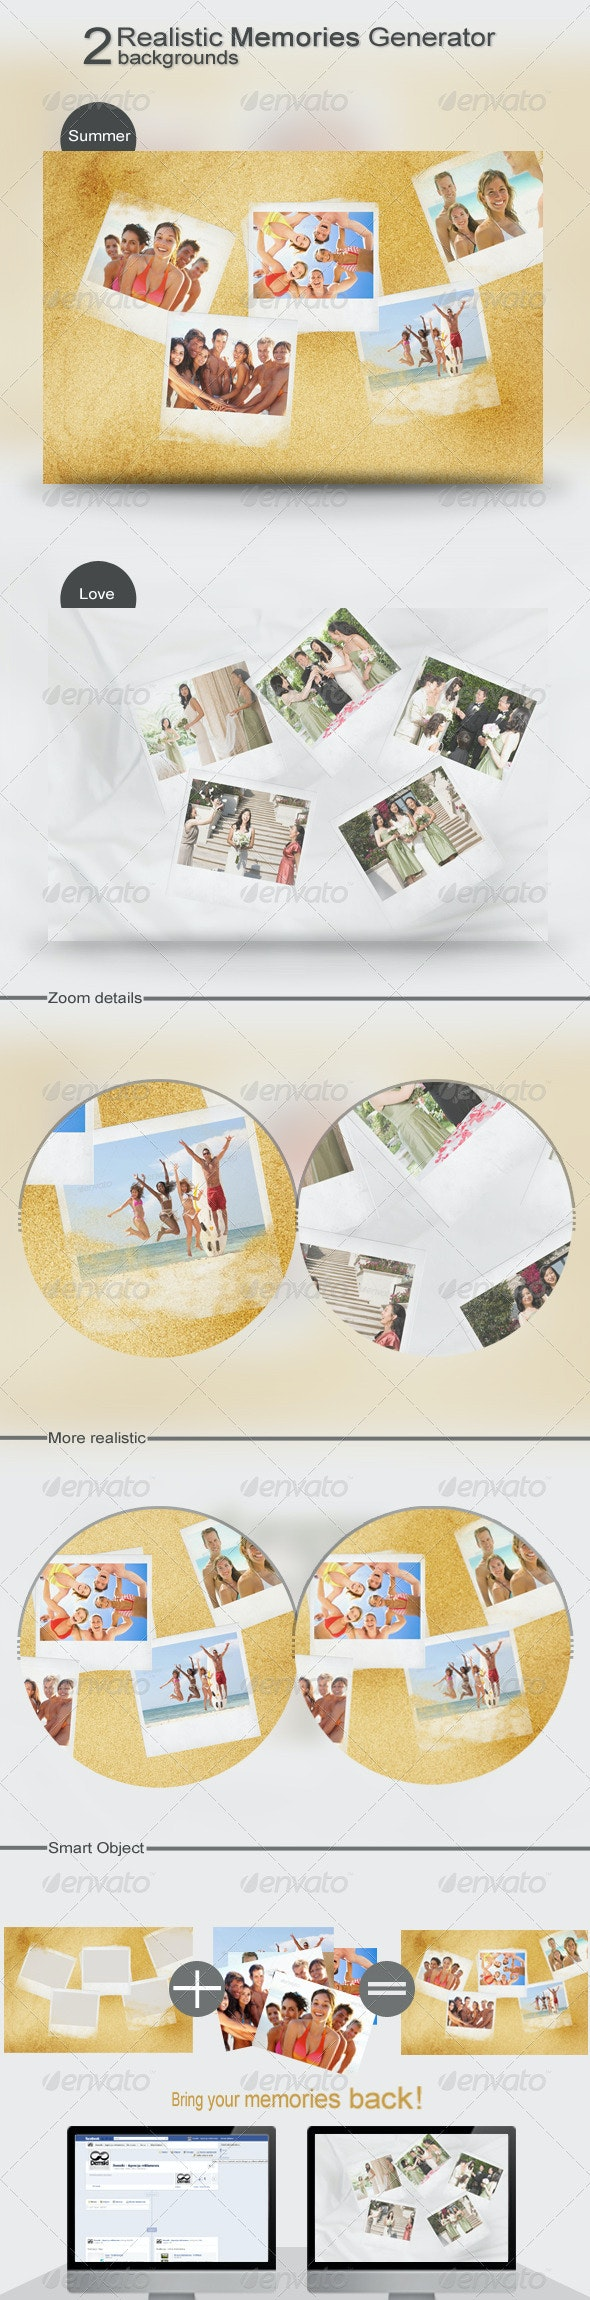 Realistic Memories Generator - Miscellaneous Backgrounds